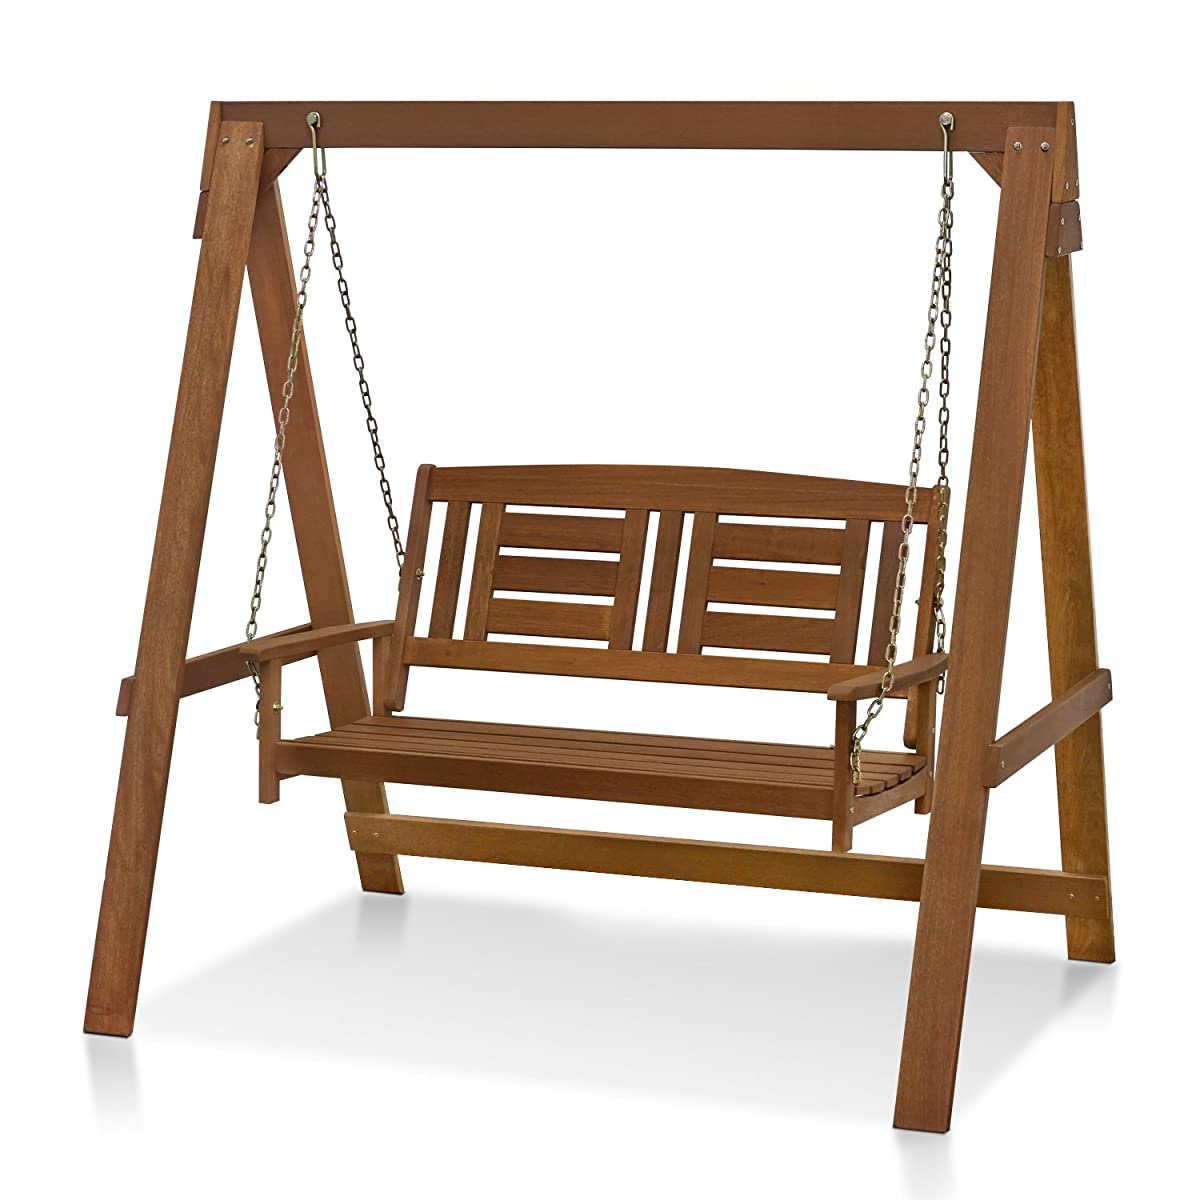 Furinno FG16409 Tioman Hardwood Hanging Porch Swing with Stand in Teak Oil